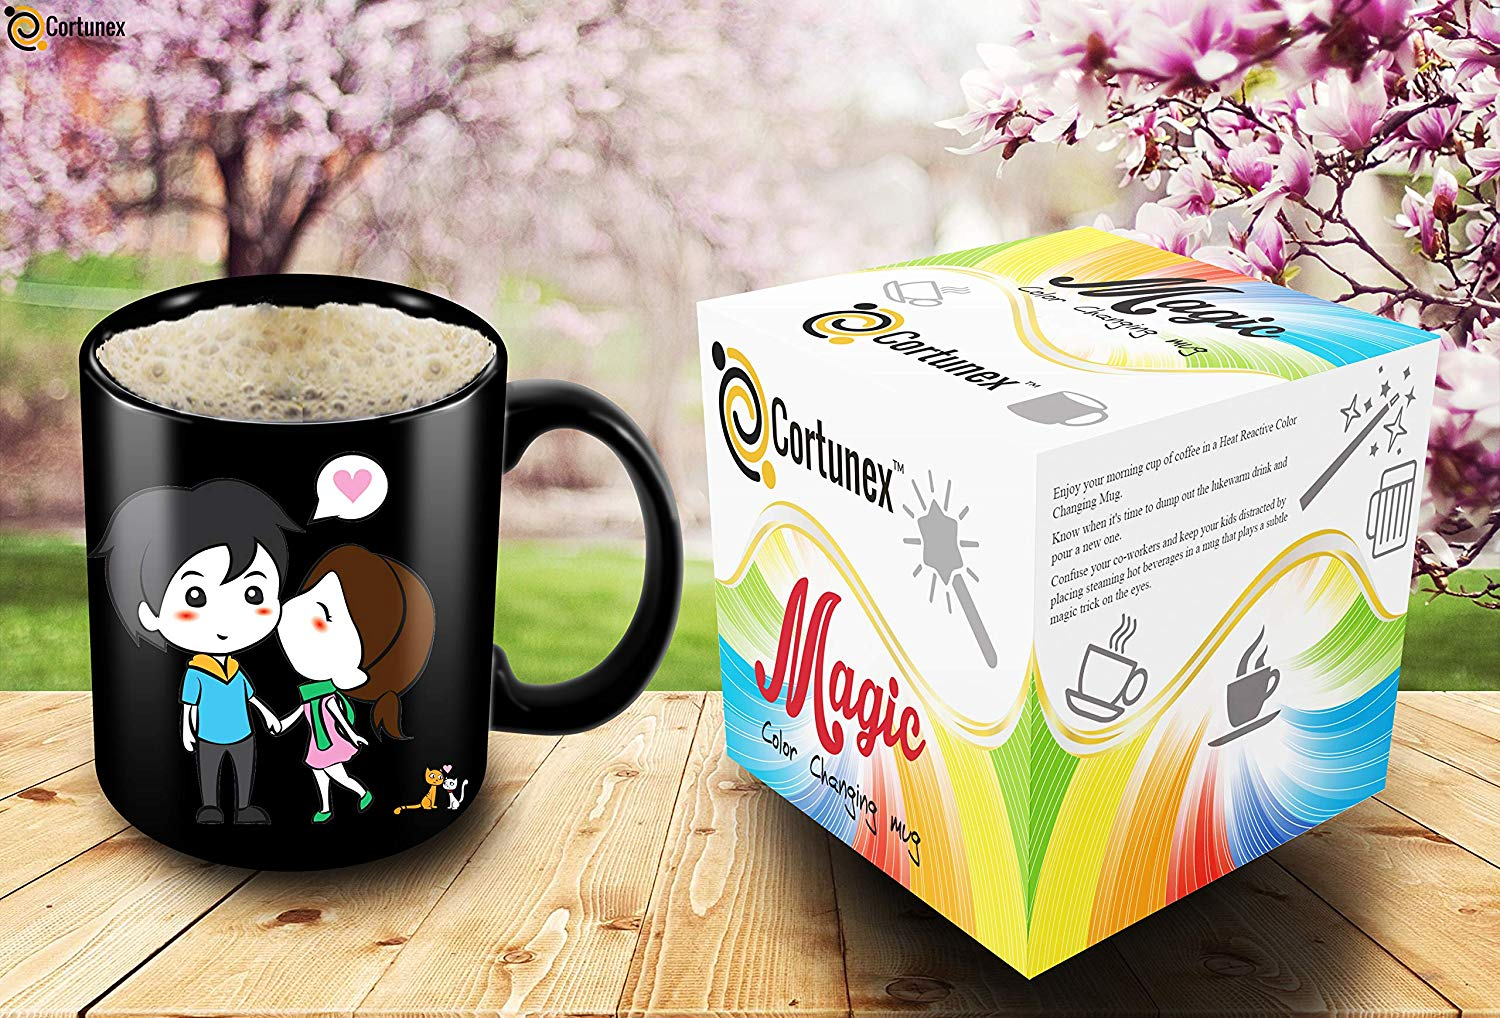 Heat Sensitive Mug Color Changing Coffee Mug Funny Coffee Cup Lovely Cartoon Couples Design Birthday Gift Idea F B07D21XCT3 3